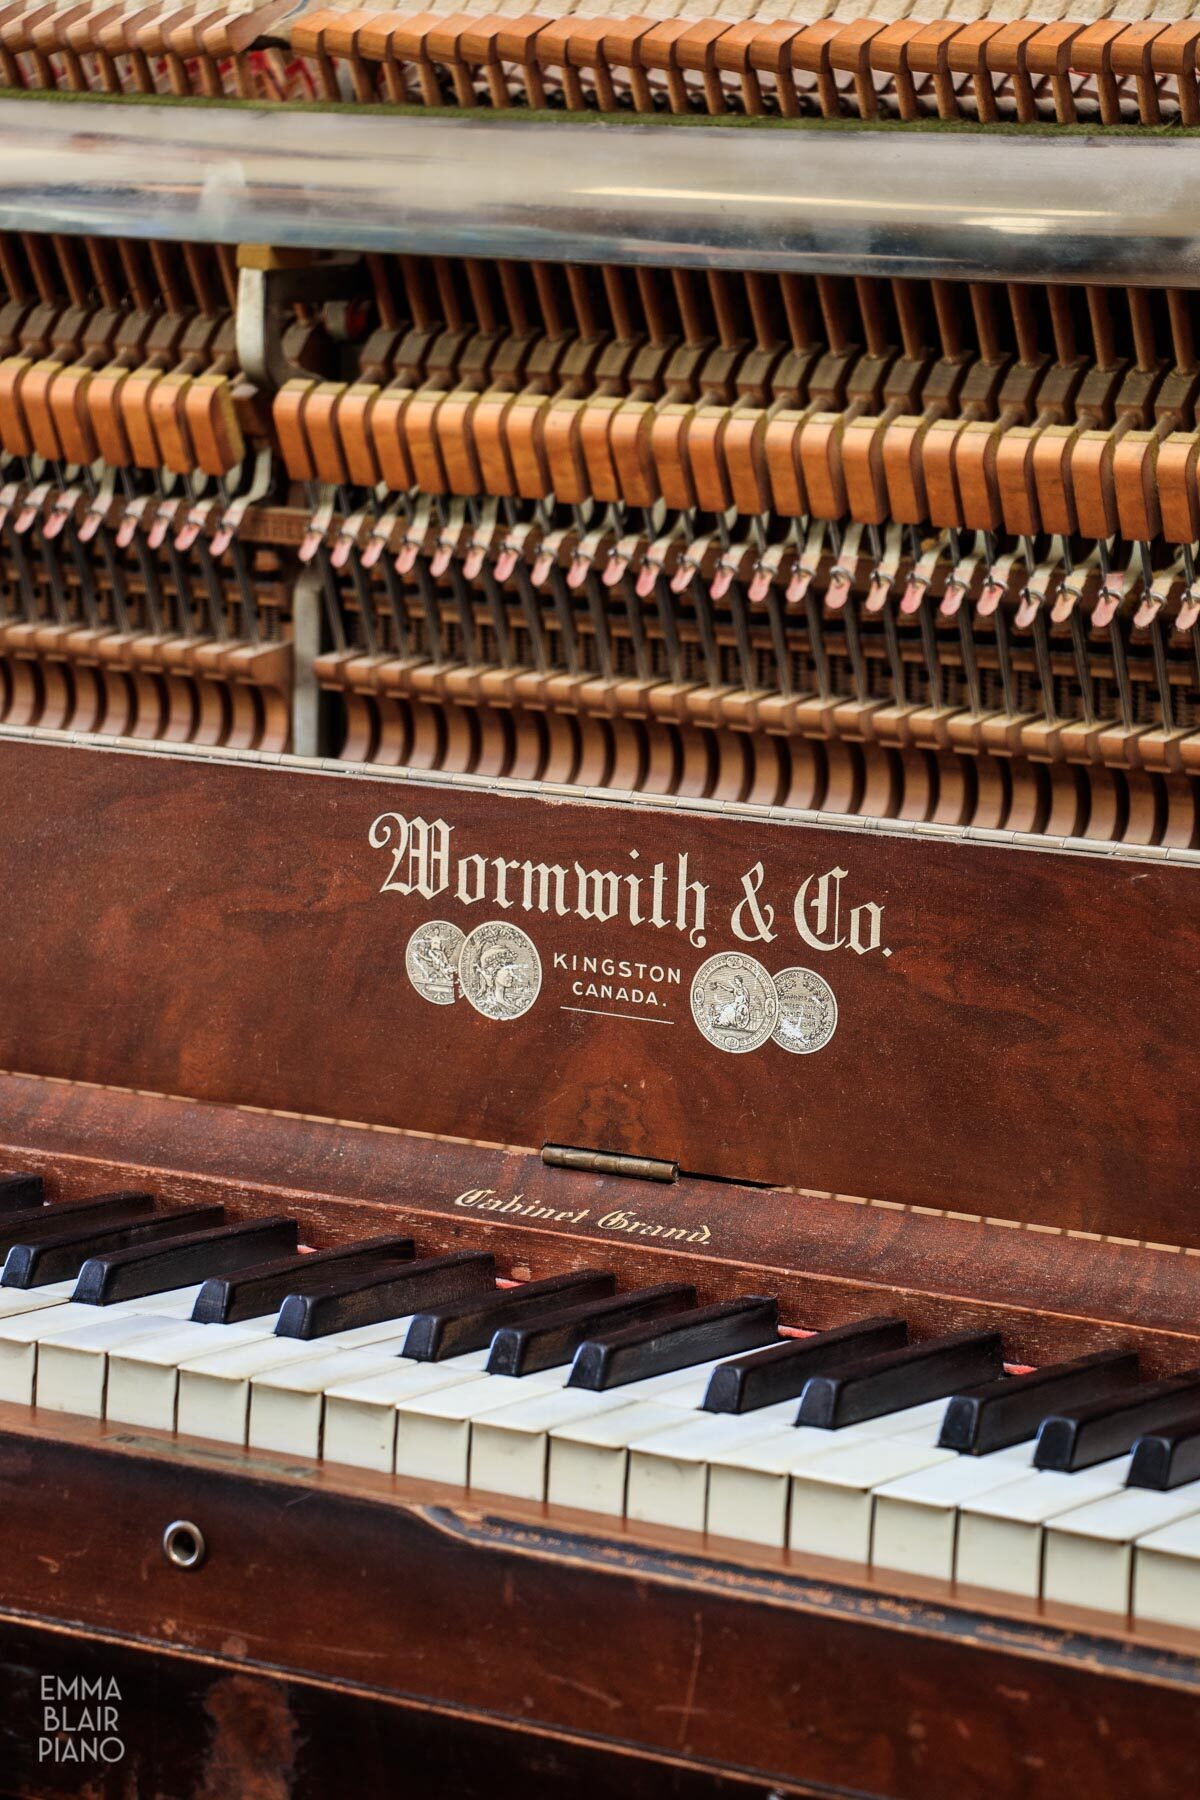 a side view of an upright grand piano action and keyboard